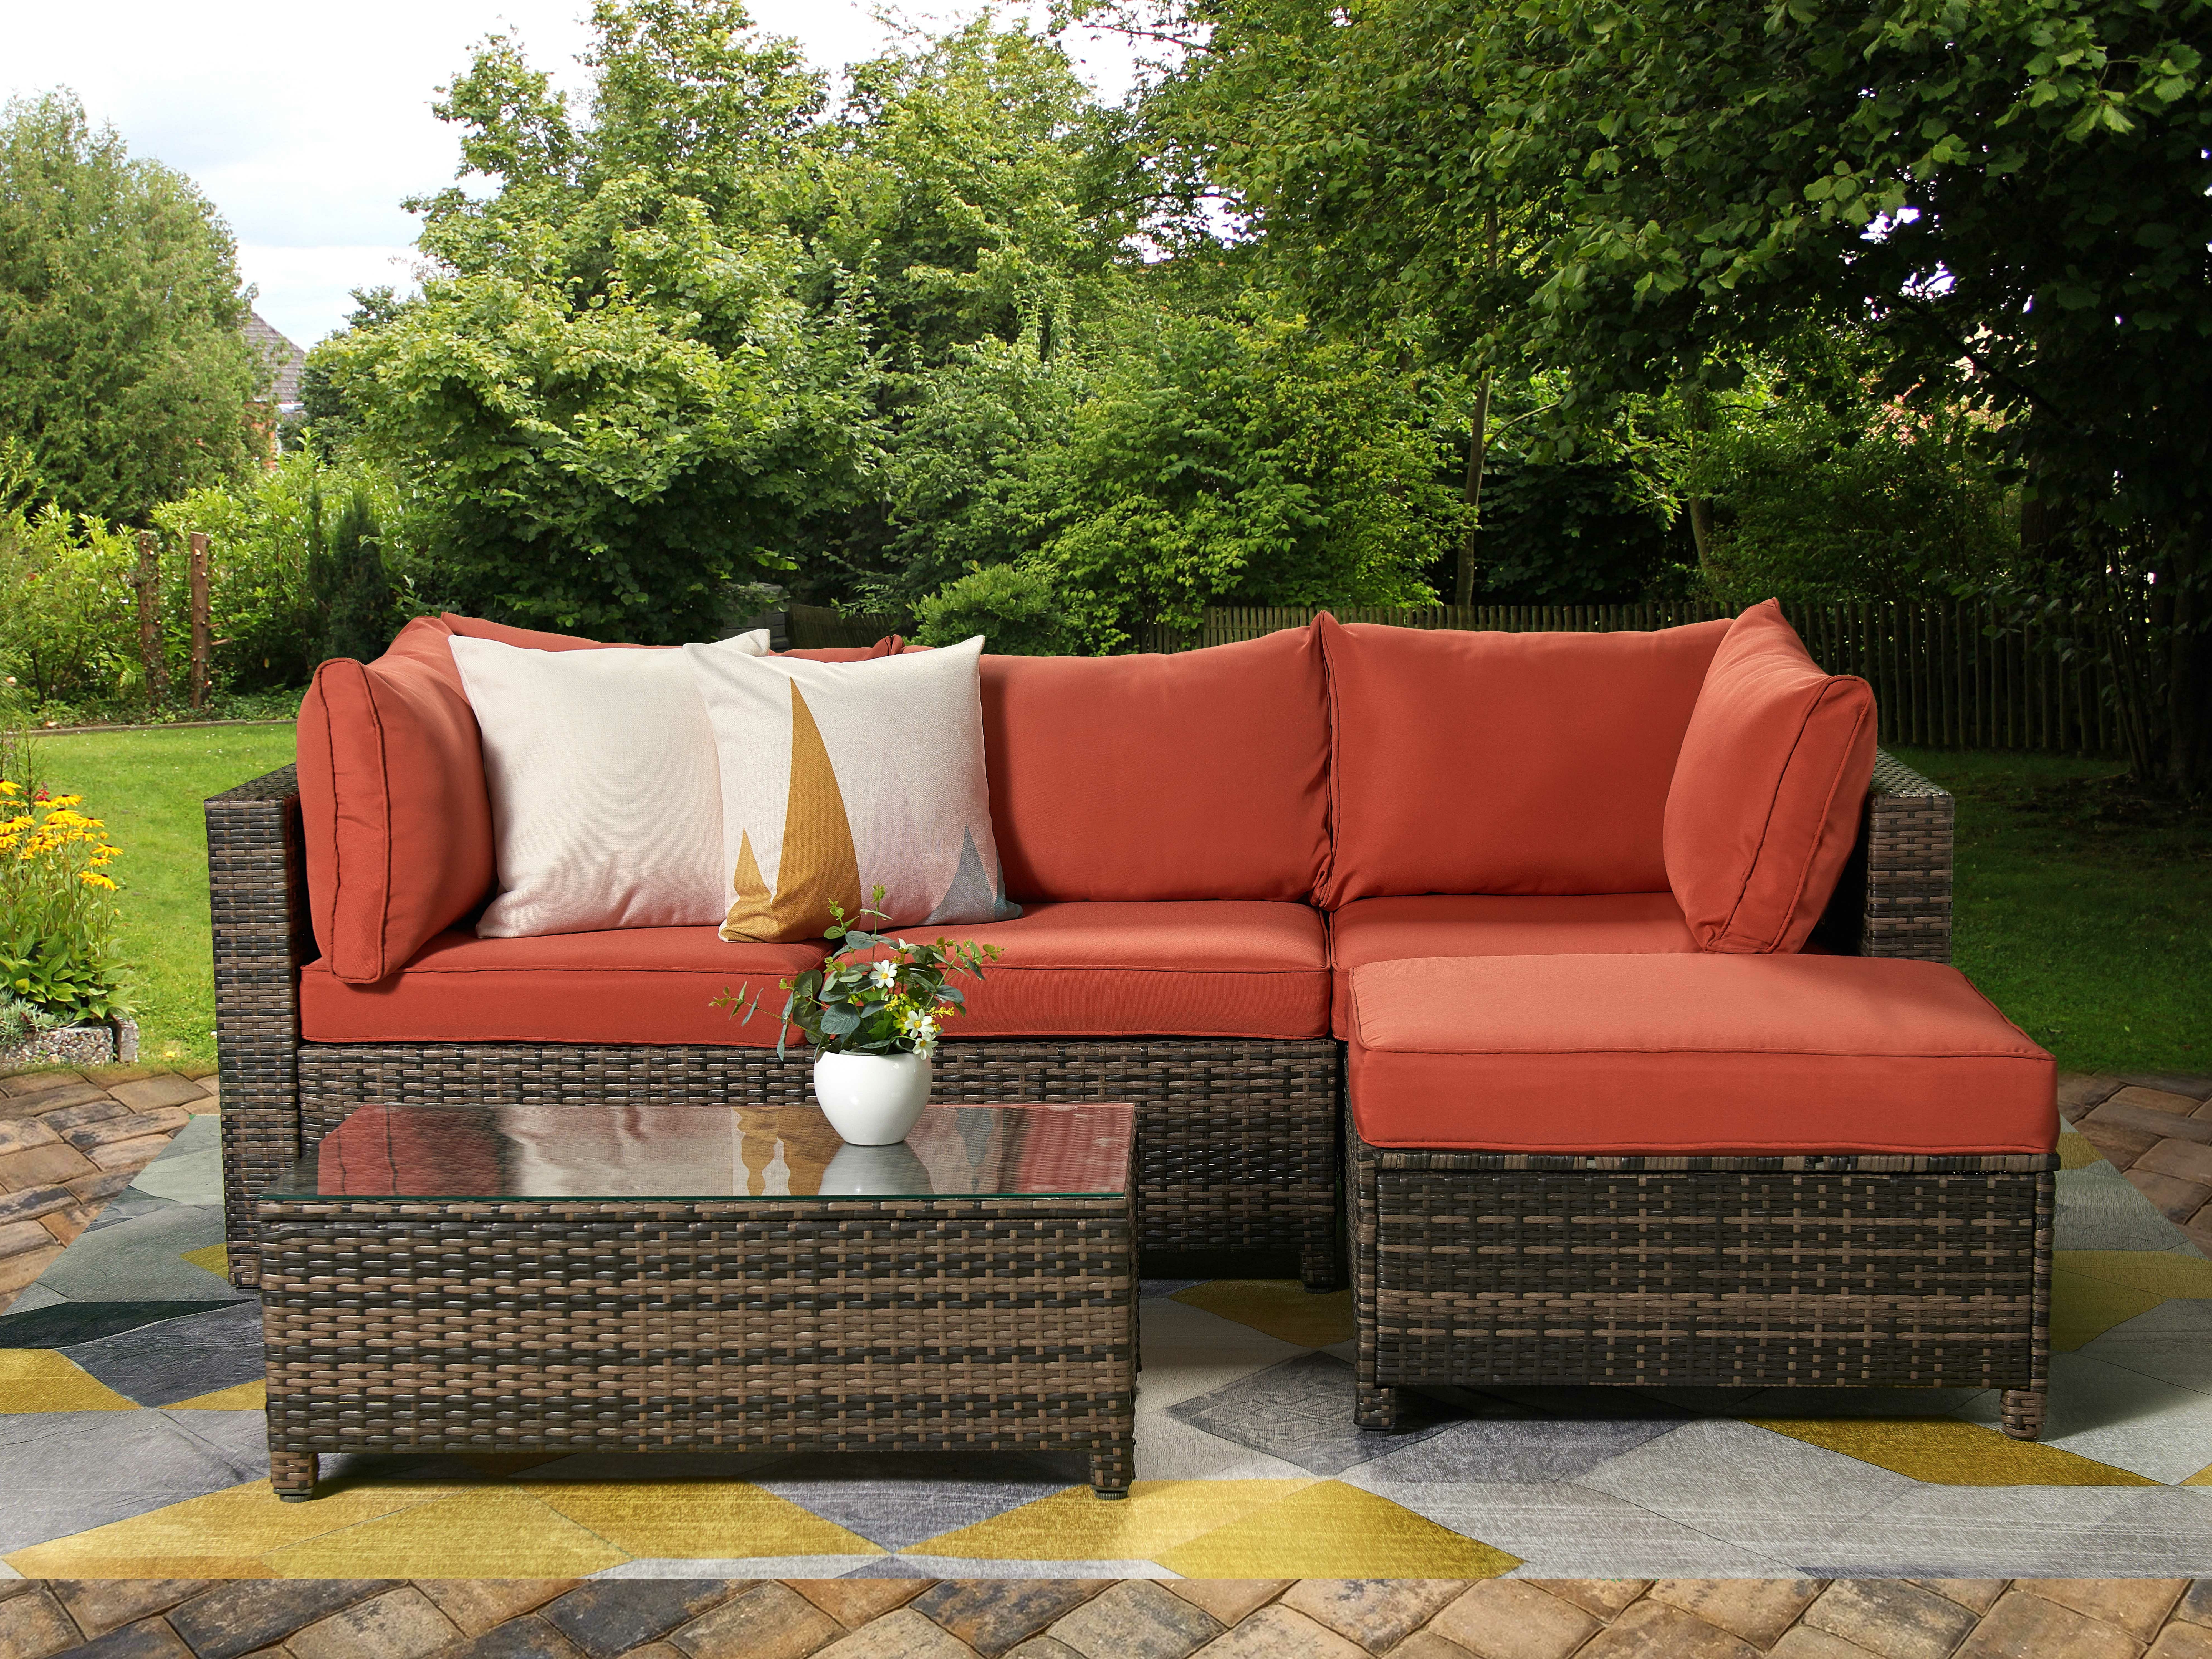 Most Current Larsen Patio Sectionals With Cushions Regarding Ivy Bronx Roni Patio Sectional With Cushions & Reviews (View 15 of 20)